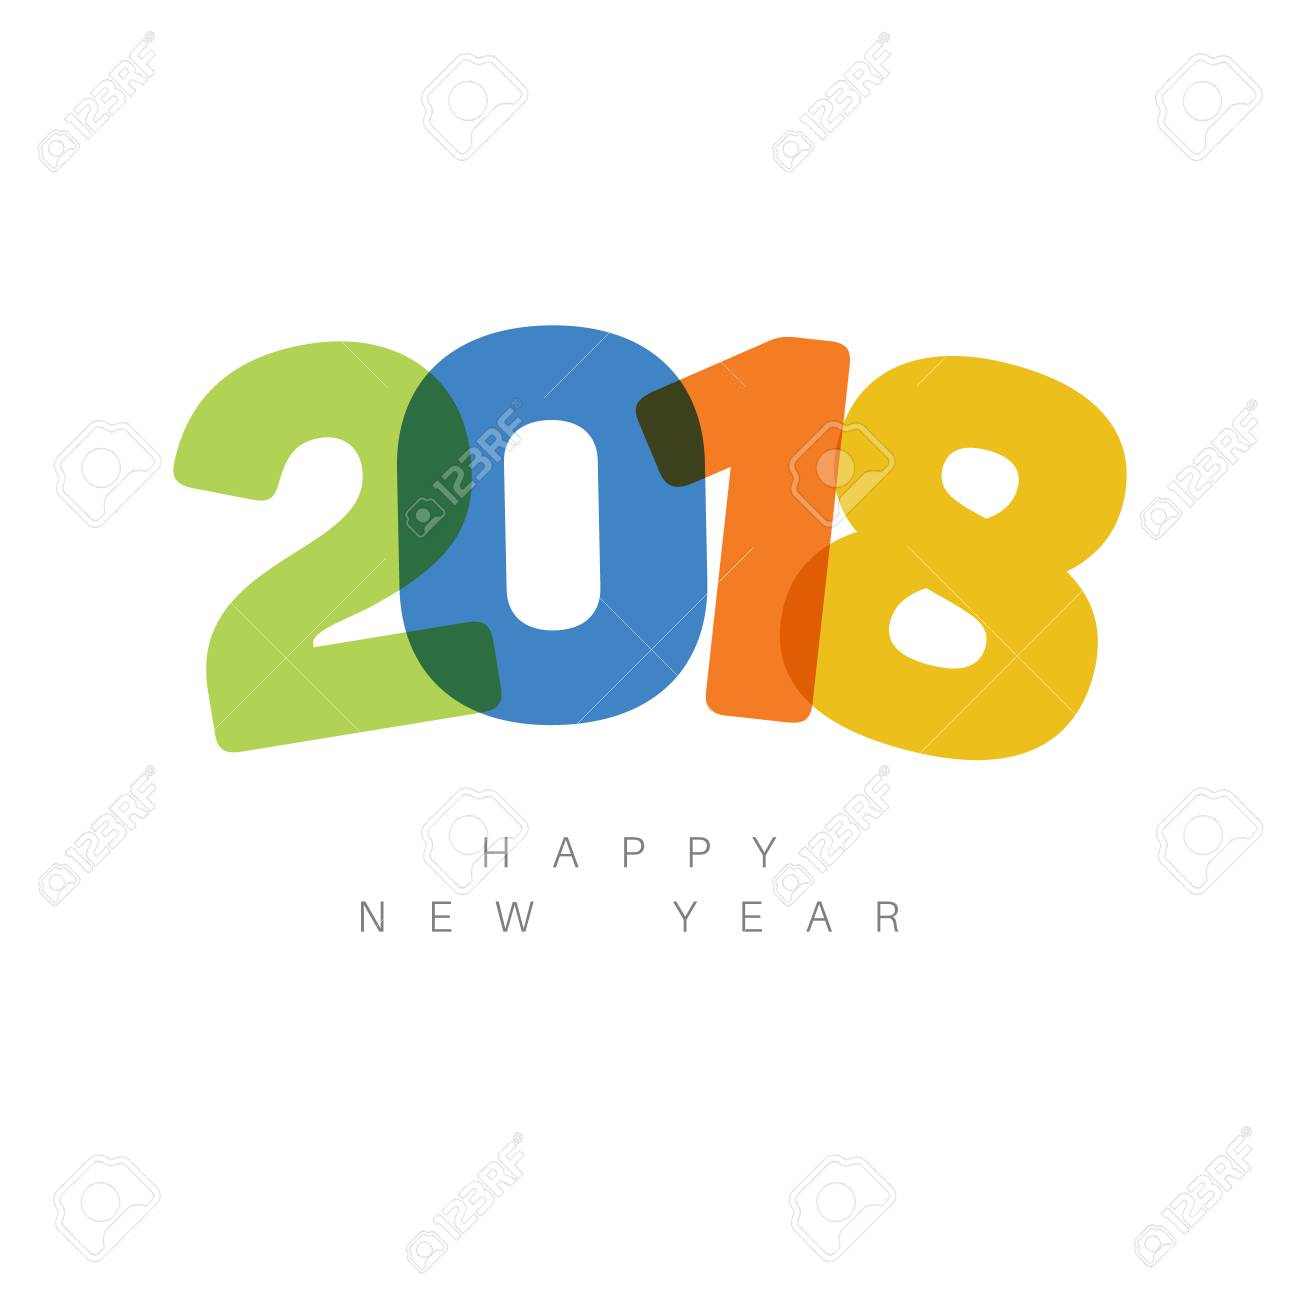 modern minimalistic happy new year card 2018 with a big numbers and flat overlay